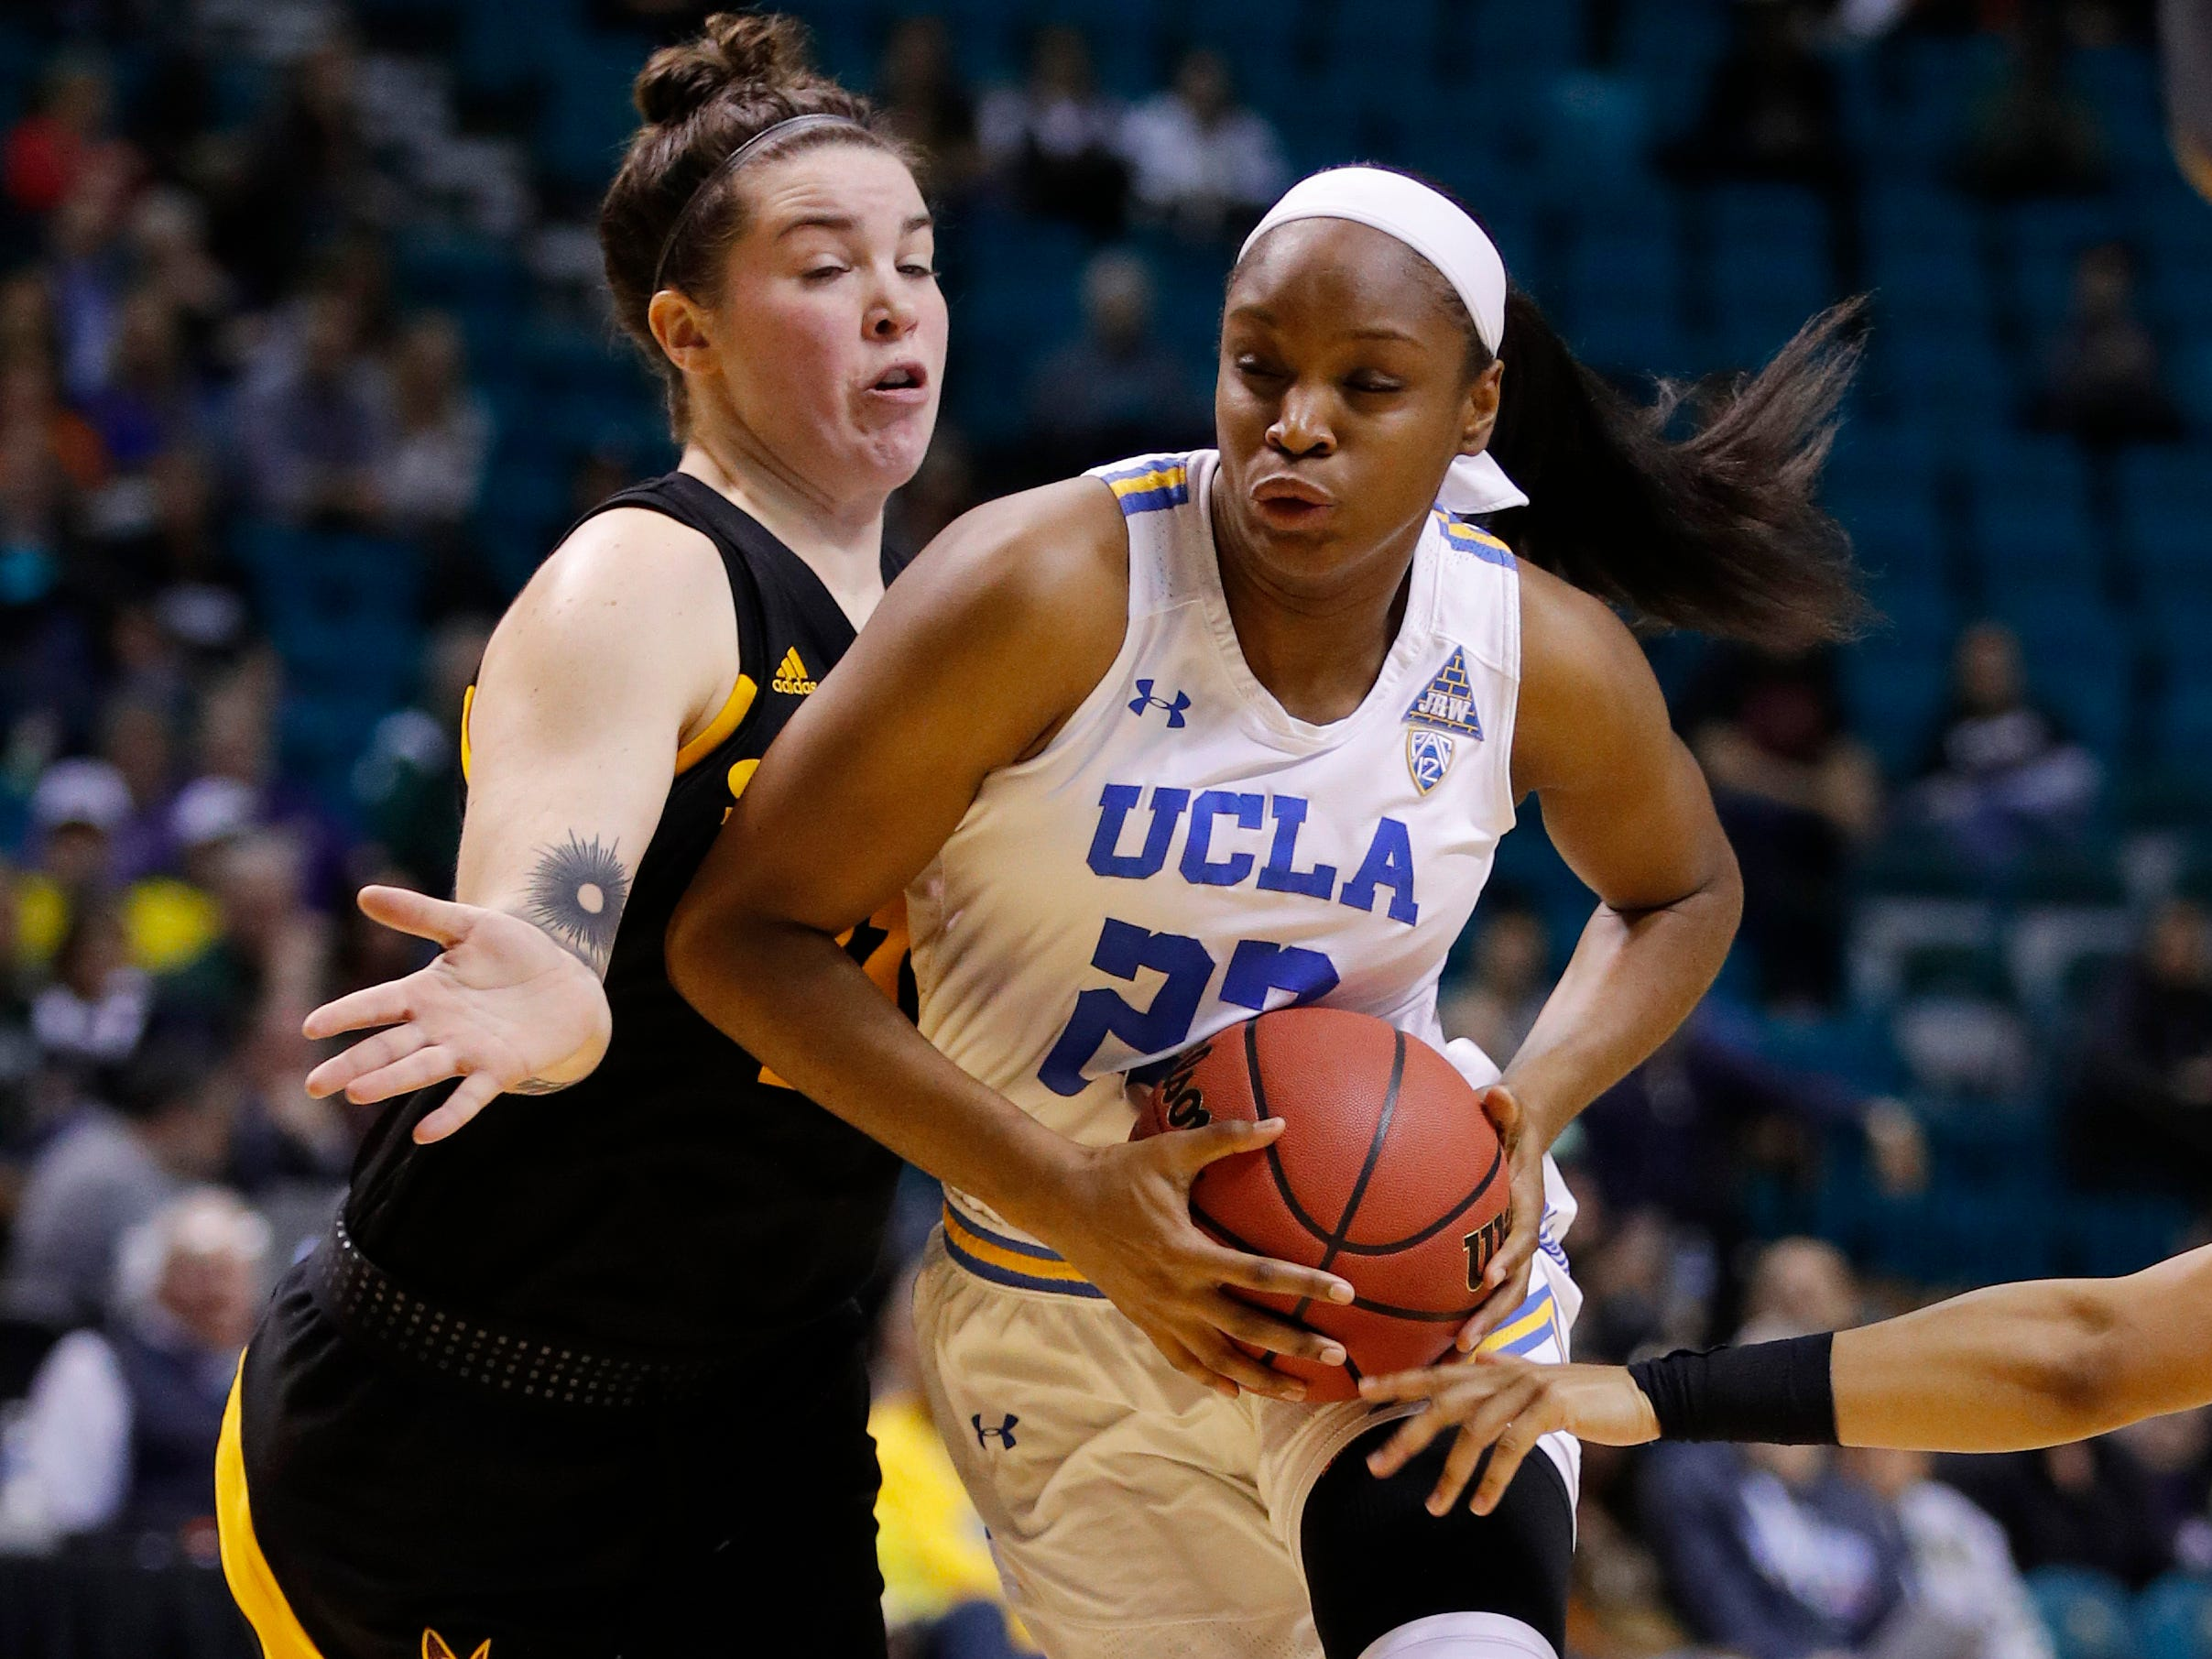 UCLA's Kennedy Burke drives around Arizona State's Robbi Ryan during the second half of an NCAA college basketball game at the Pac-12 women's tournament Friday, March 8, 2019, in Las Vegas.